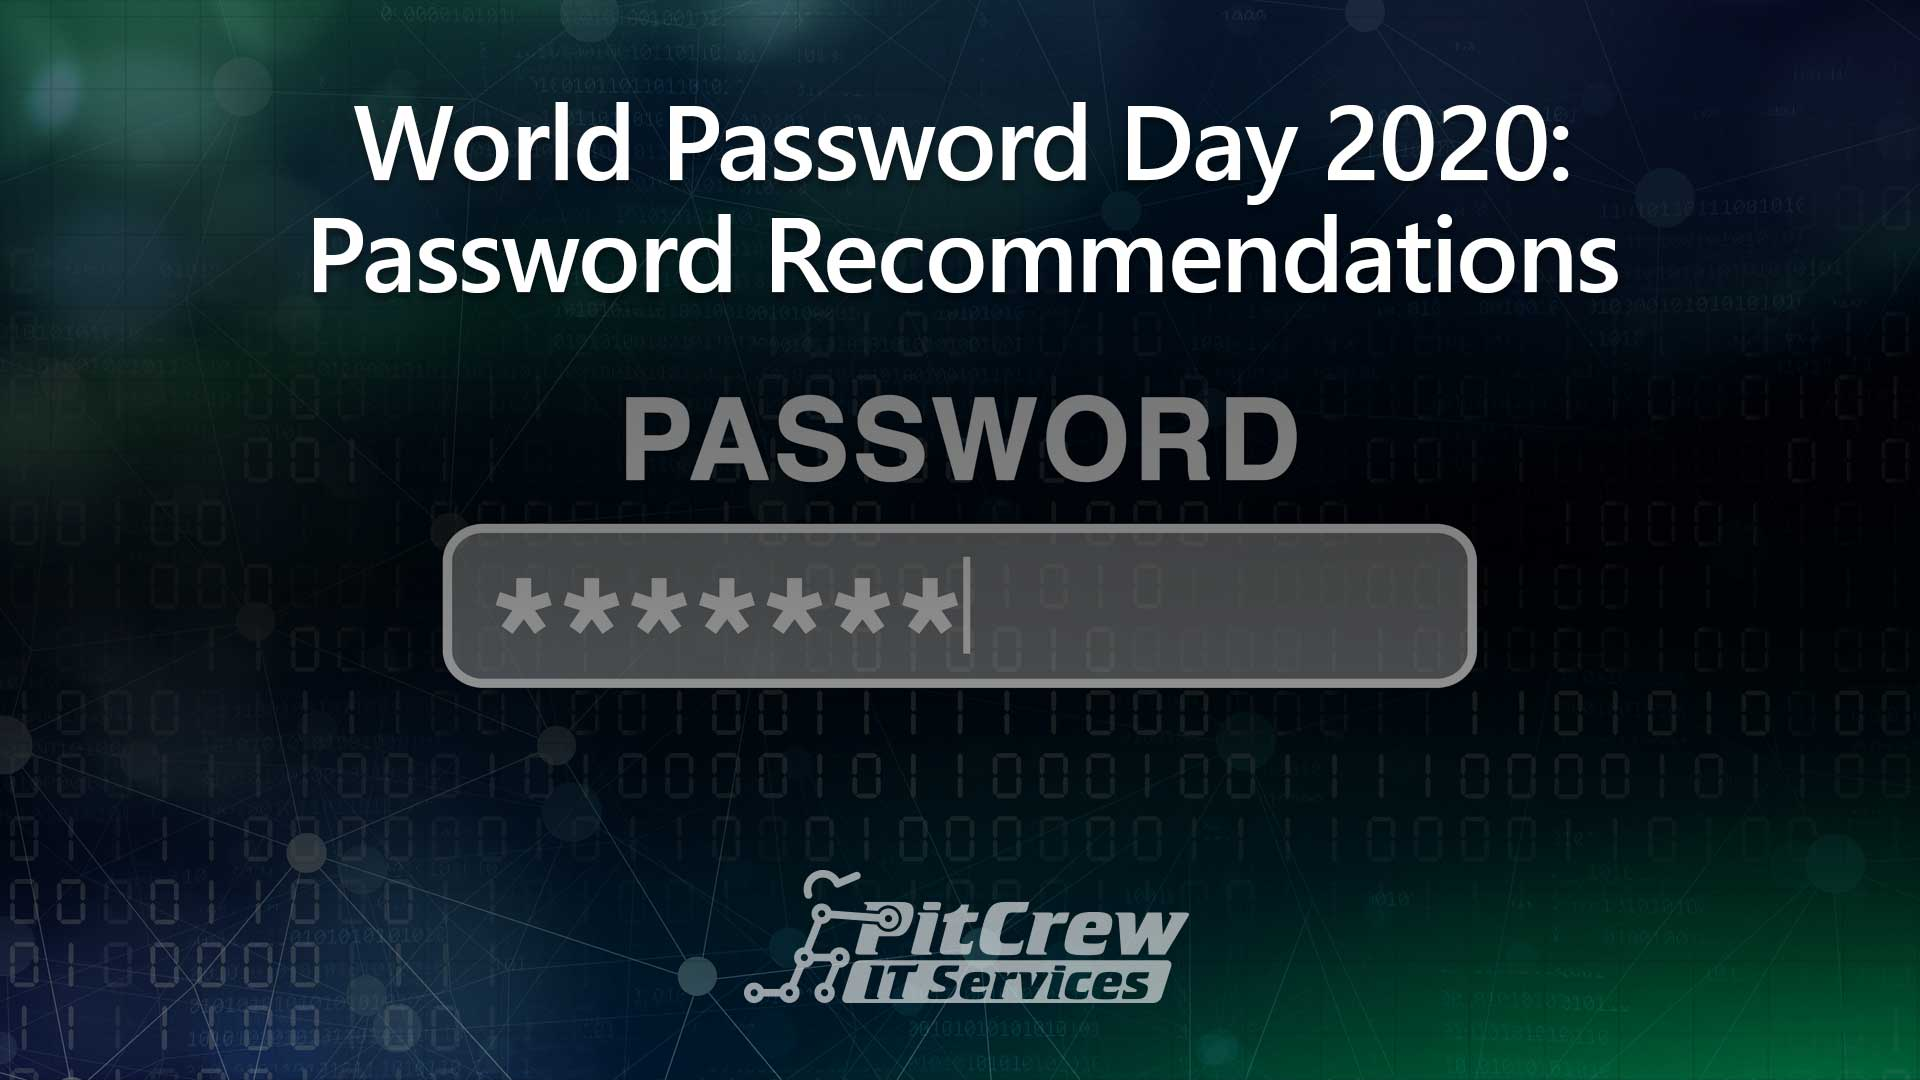 World Password Day 2020: Password Recommendations